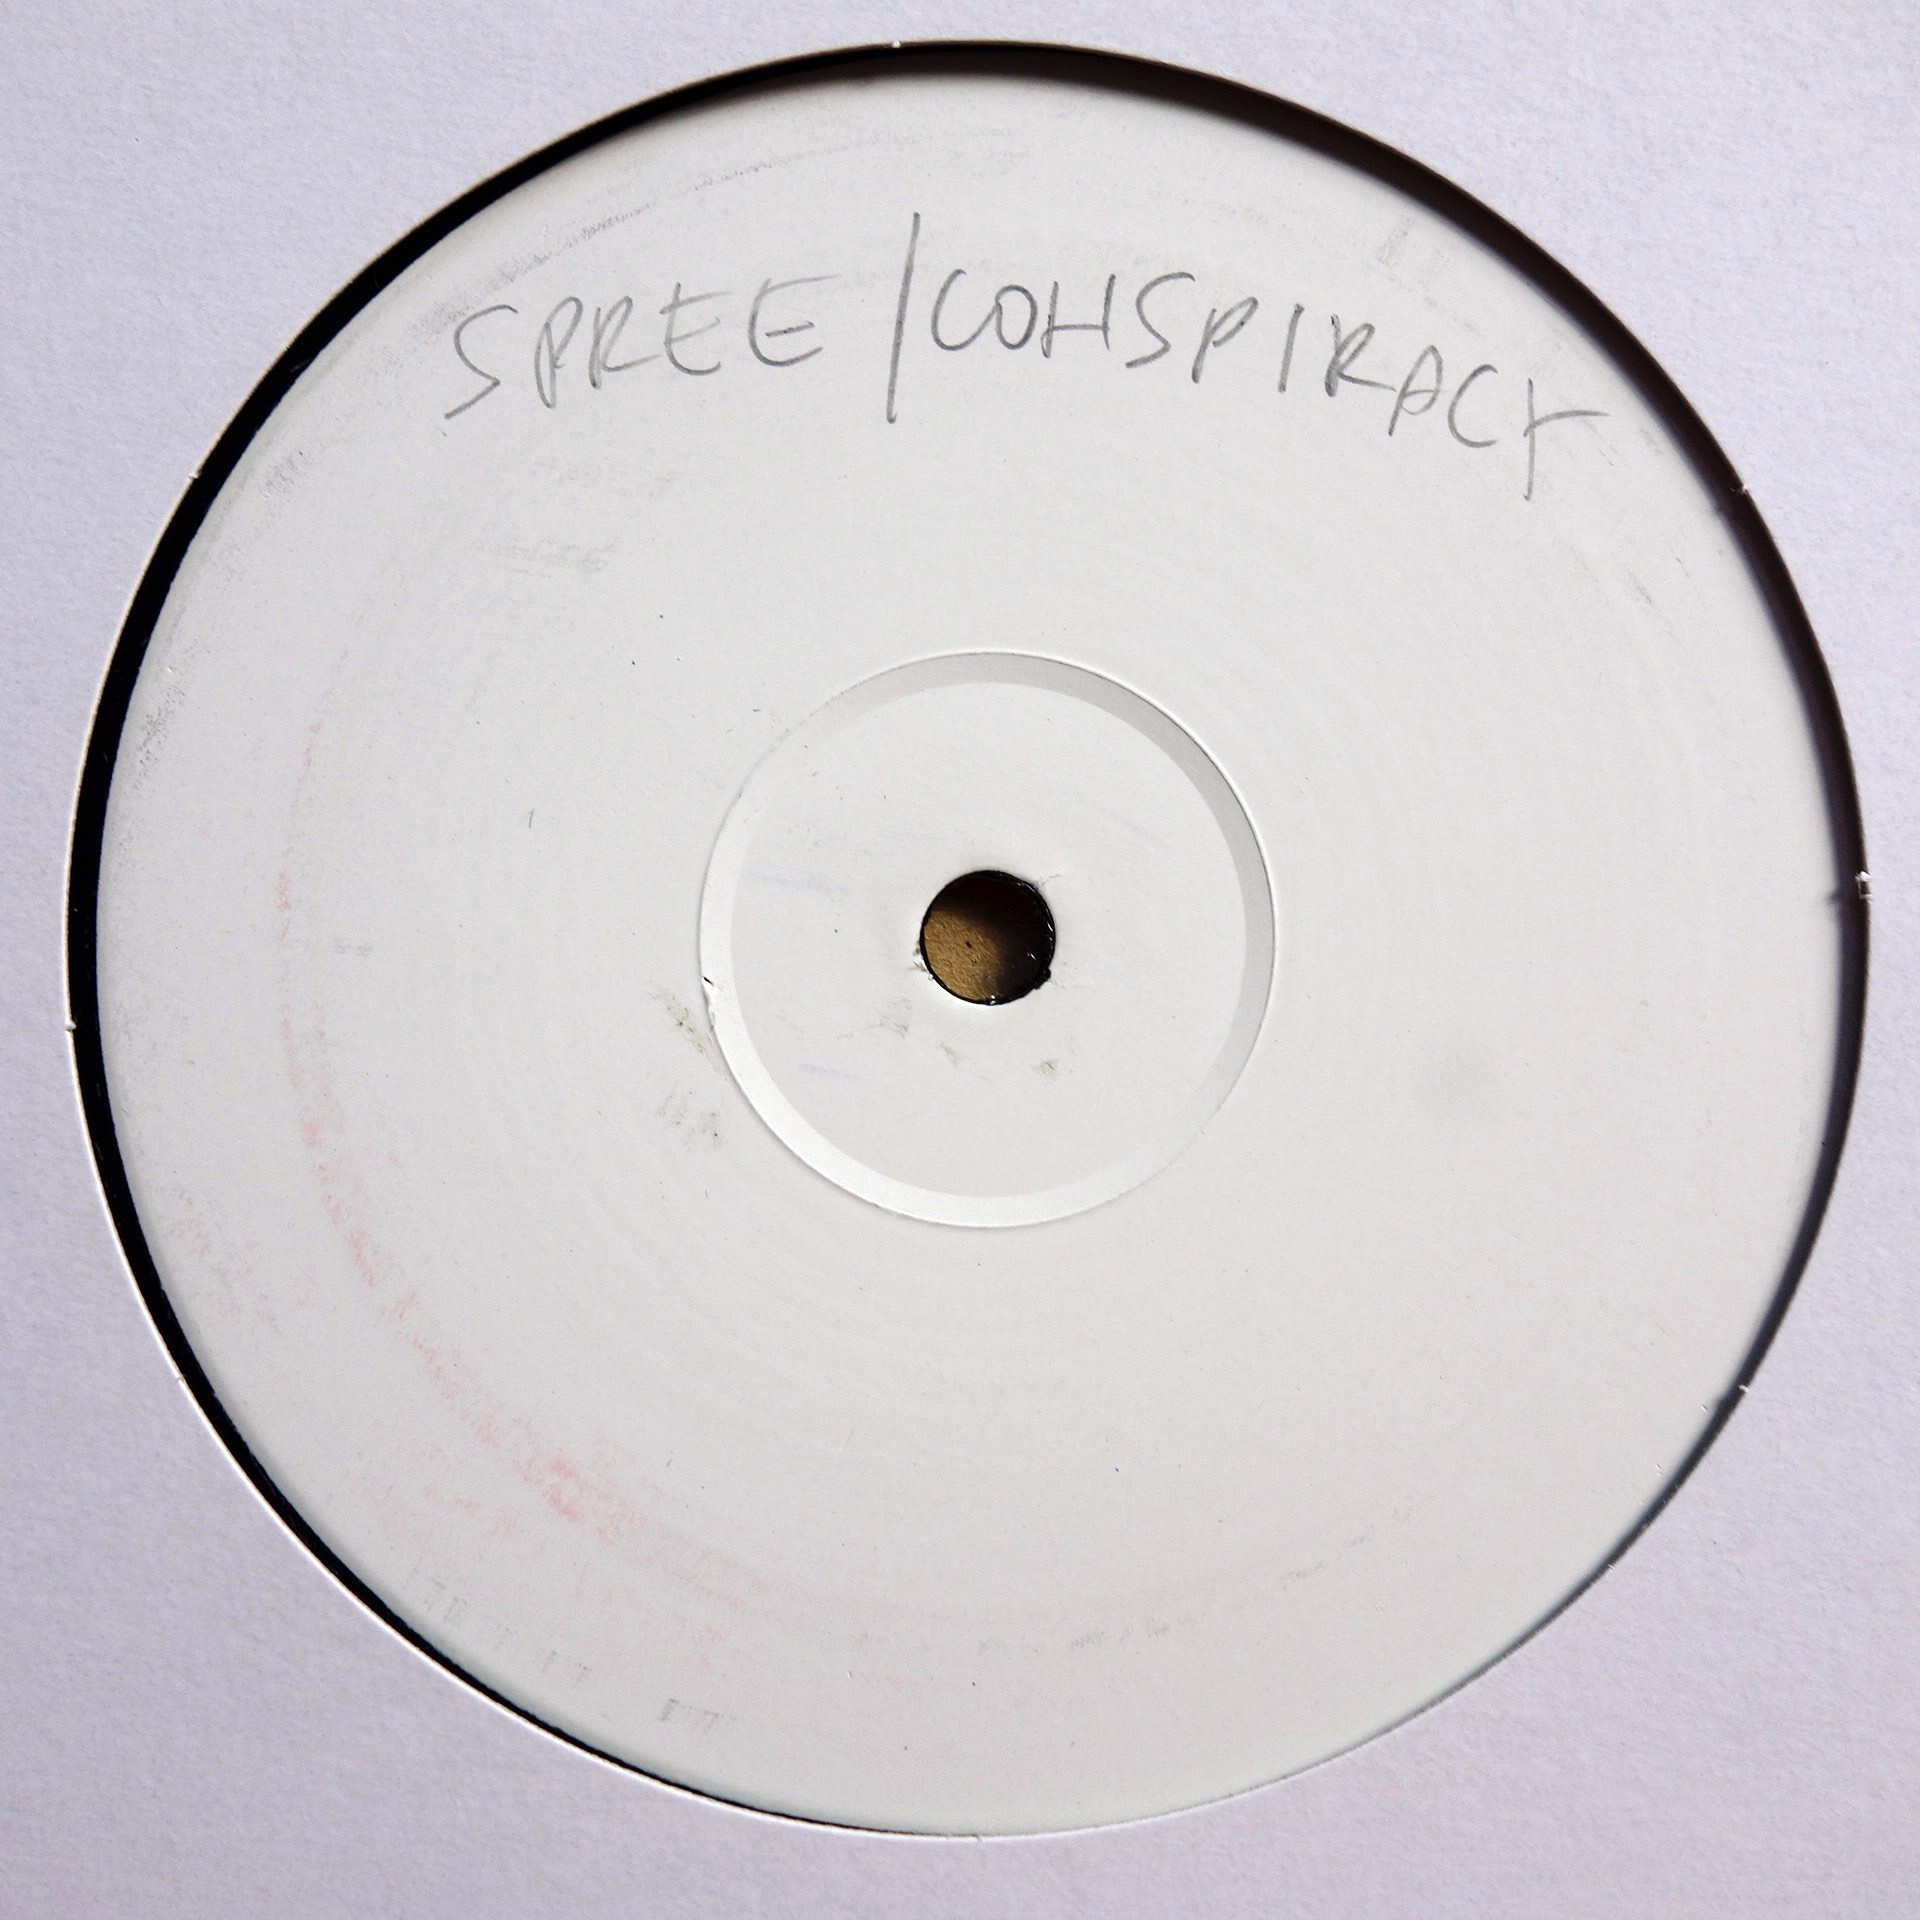 "12"" Spree / Conspiracy ‎– Move (State Of Play Remix) / Hear The Sound / Move"